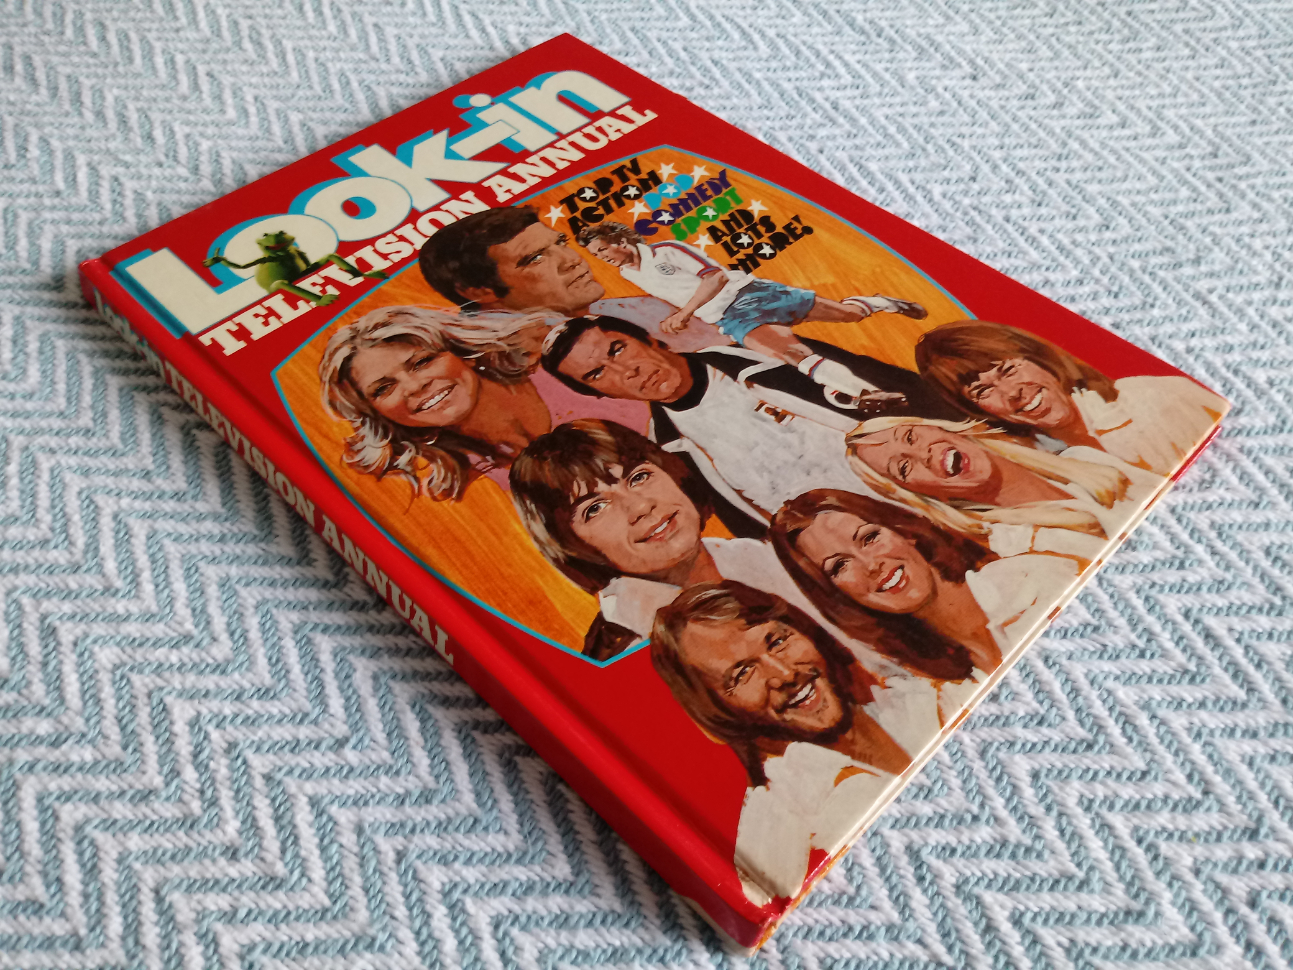 Look-In Television Annual hardback book 77 pages Published 1977 Independent Television